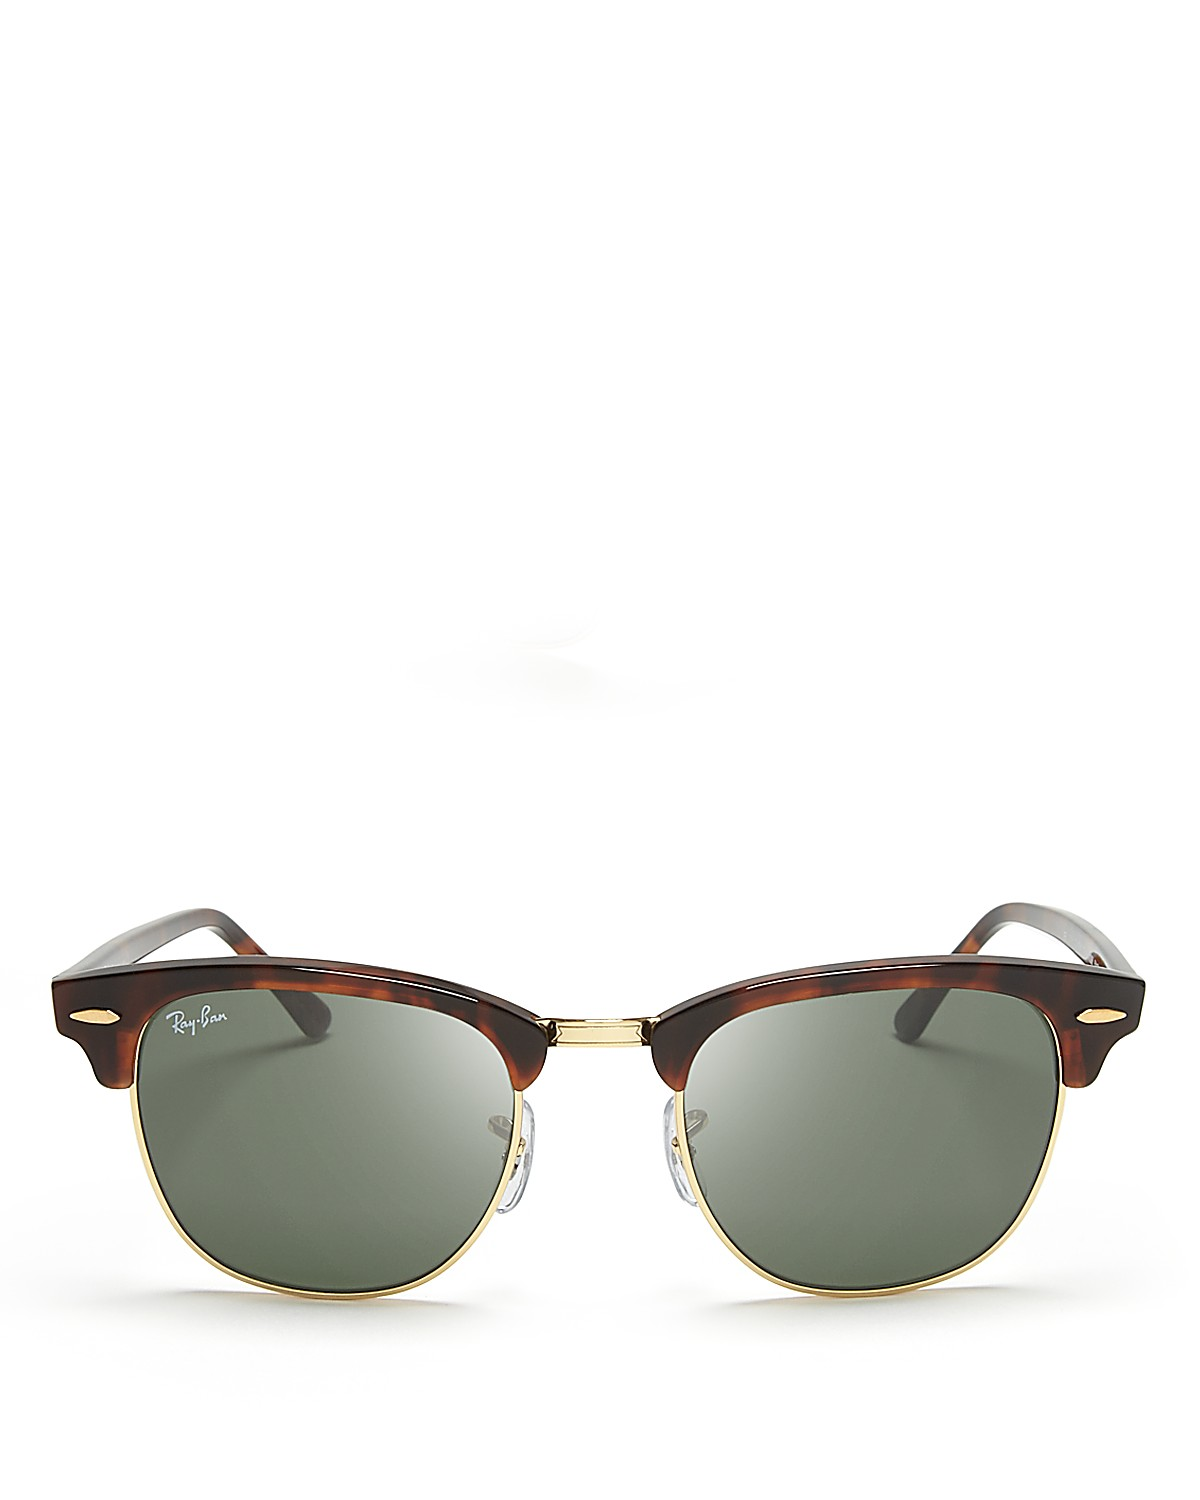 Ray Ban Classic Club Master Sunglasses - A modern twist on a classic shade. He'll pray for sun just to get to pull these on.